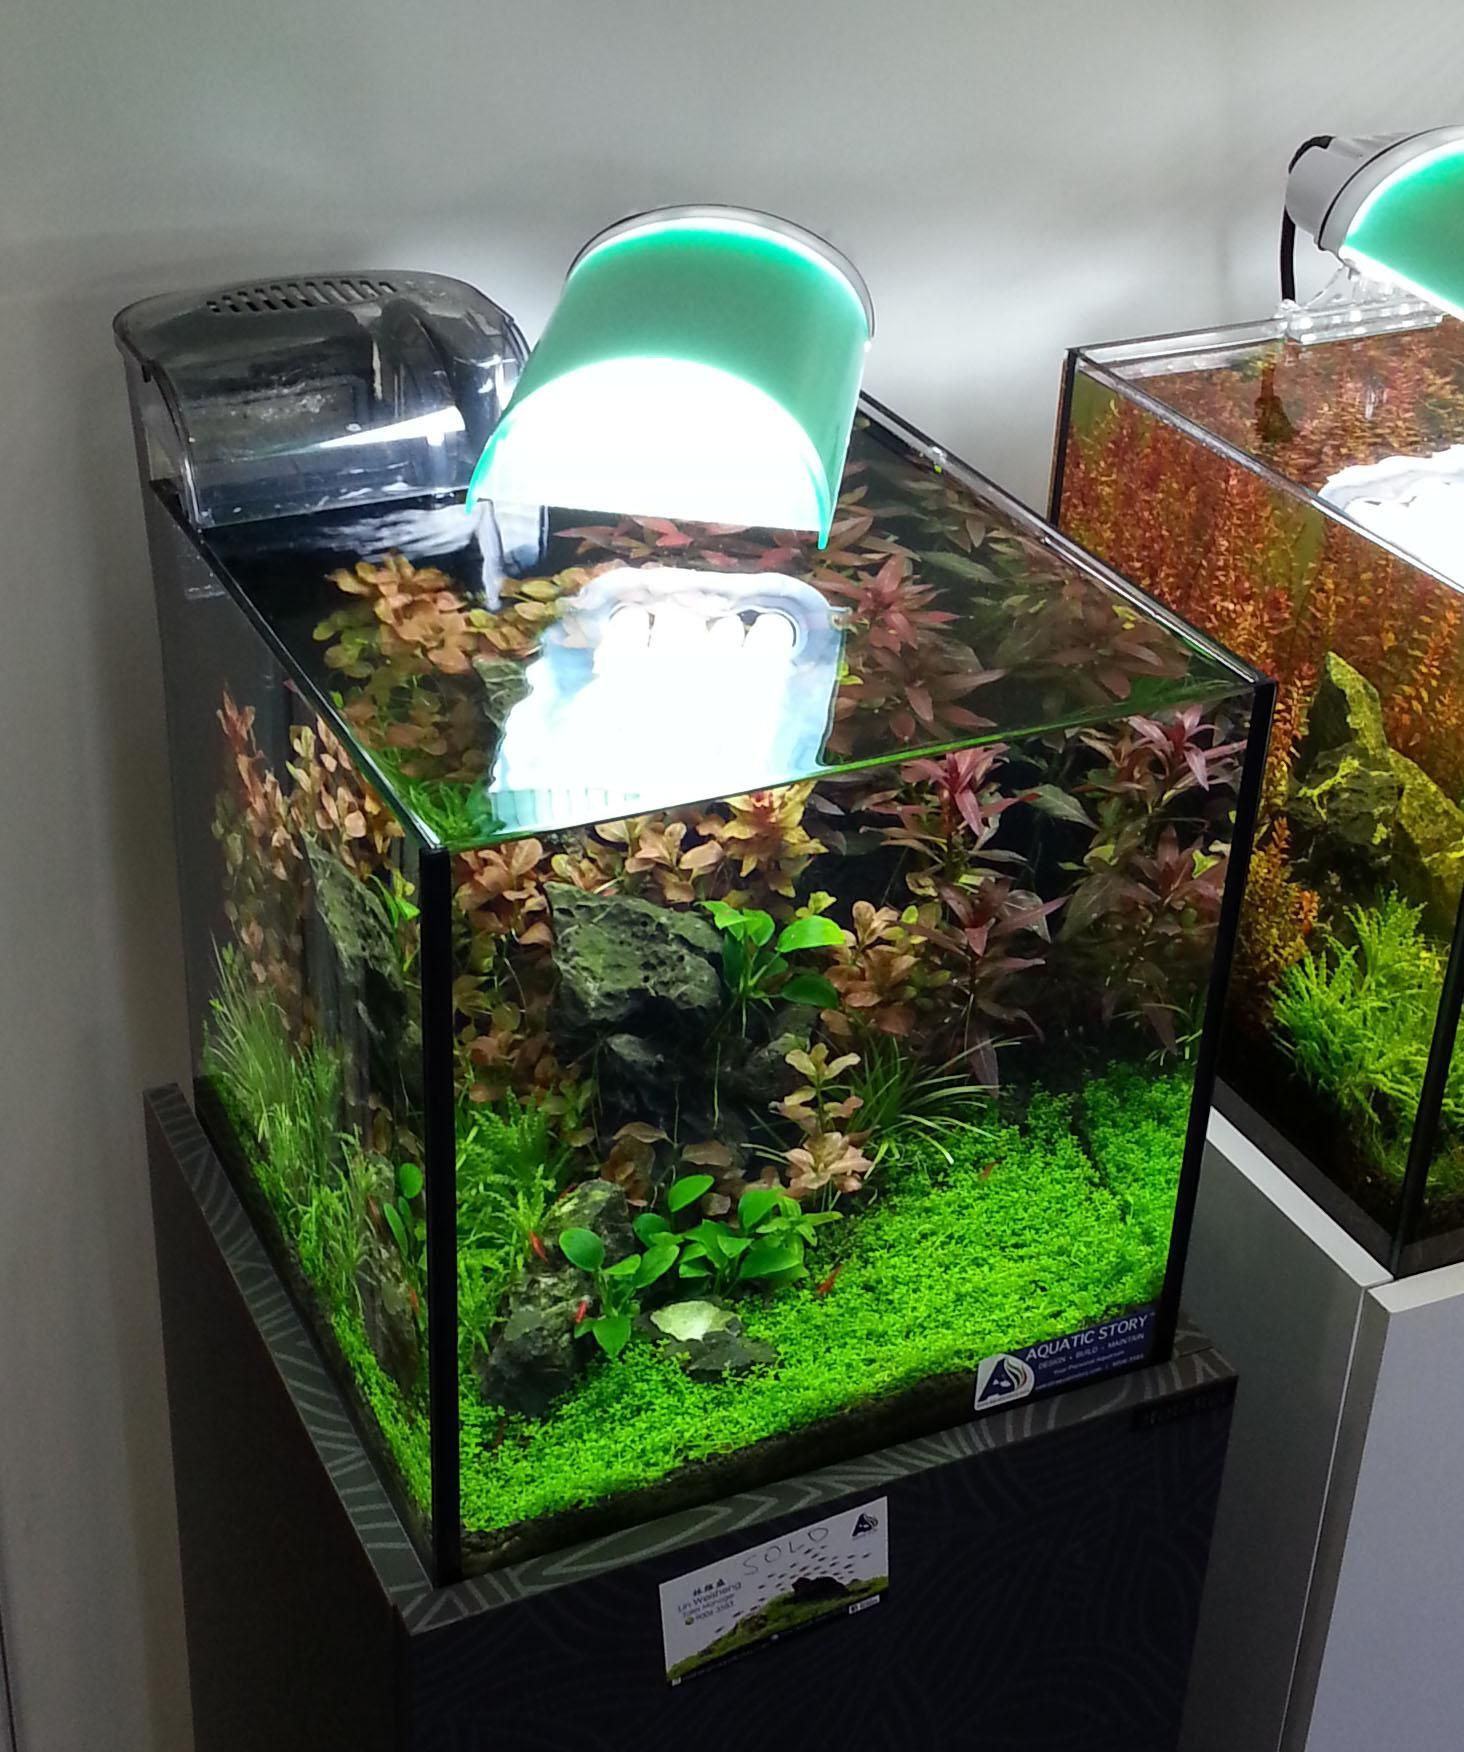 Xz s 3ft High tech low tech nano experiments The Planted Tank